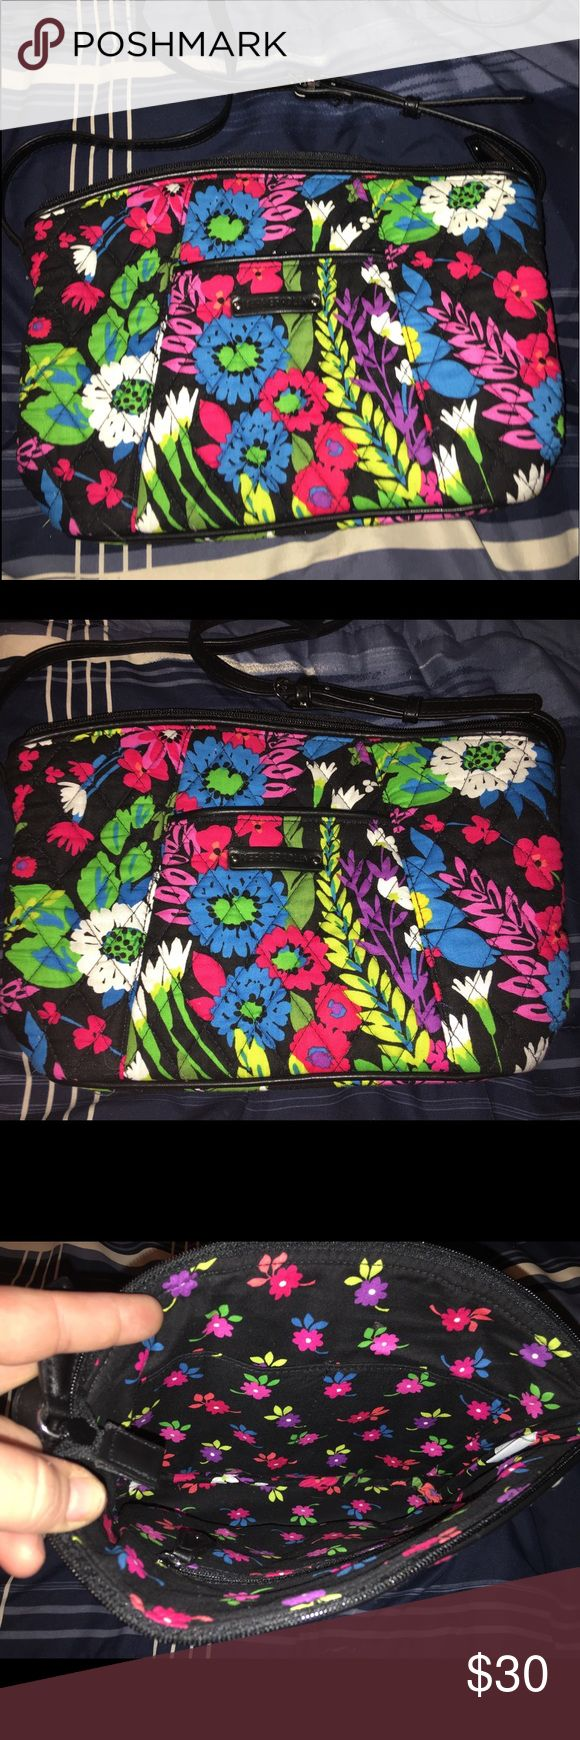 Limited edition Vera Bradley handbag! NWOT Only available through QVC I believe! Beautiful design and hard to find! Vera Bradley Bags Crossbody Bags